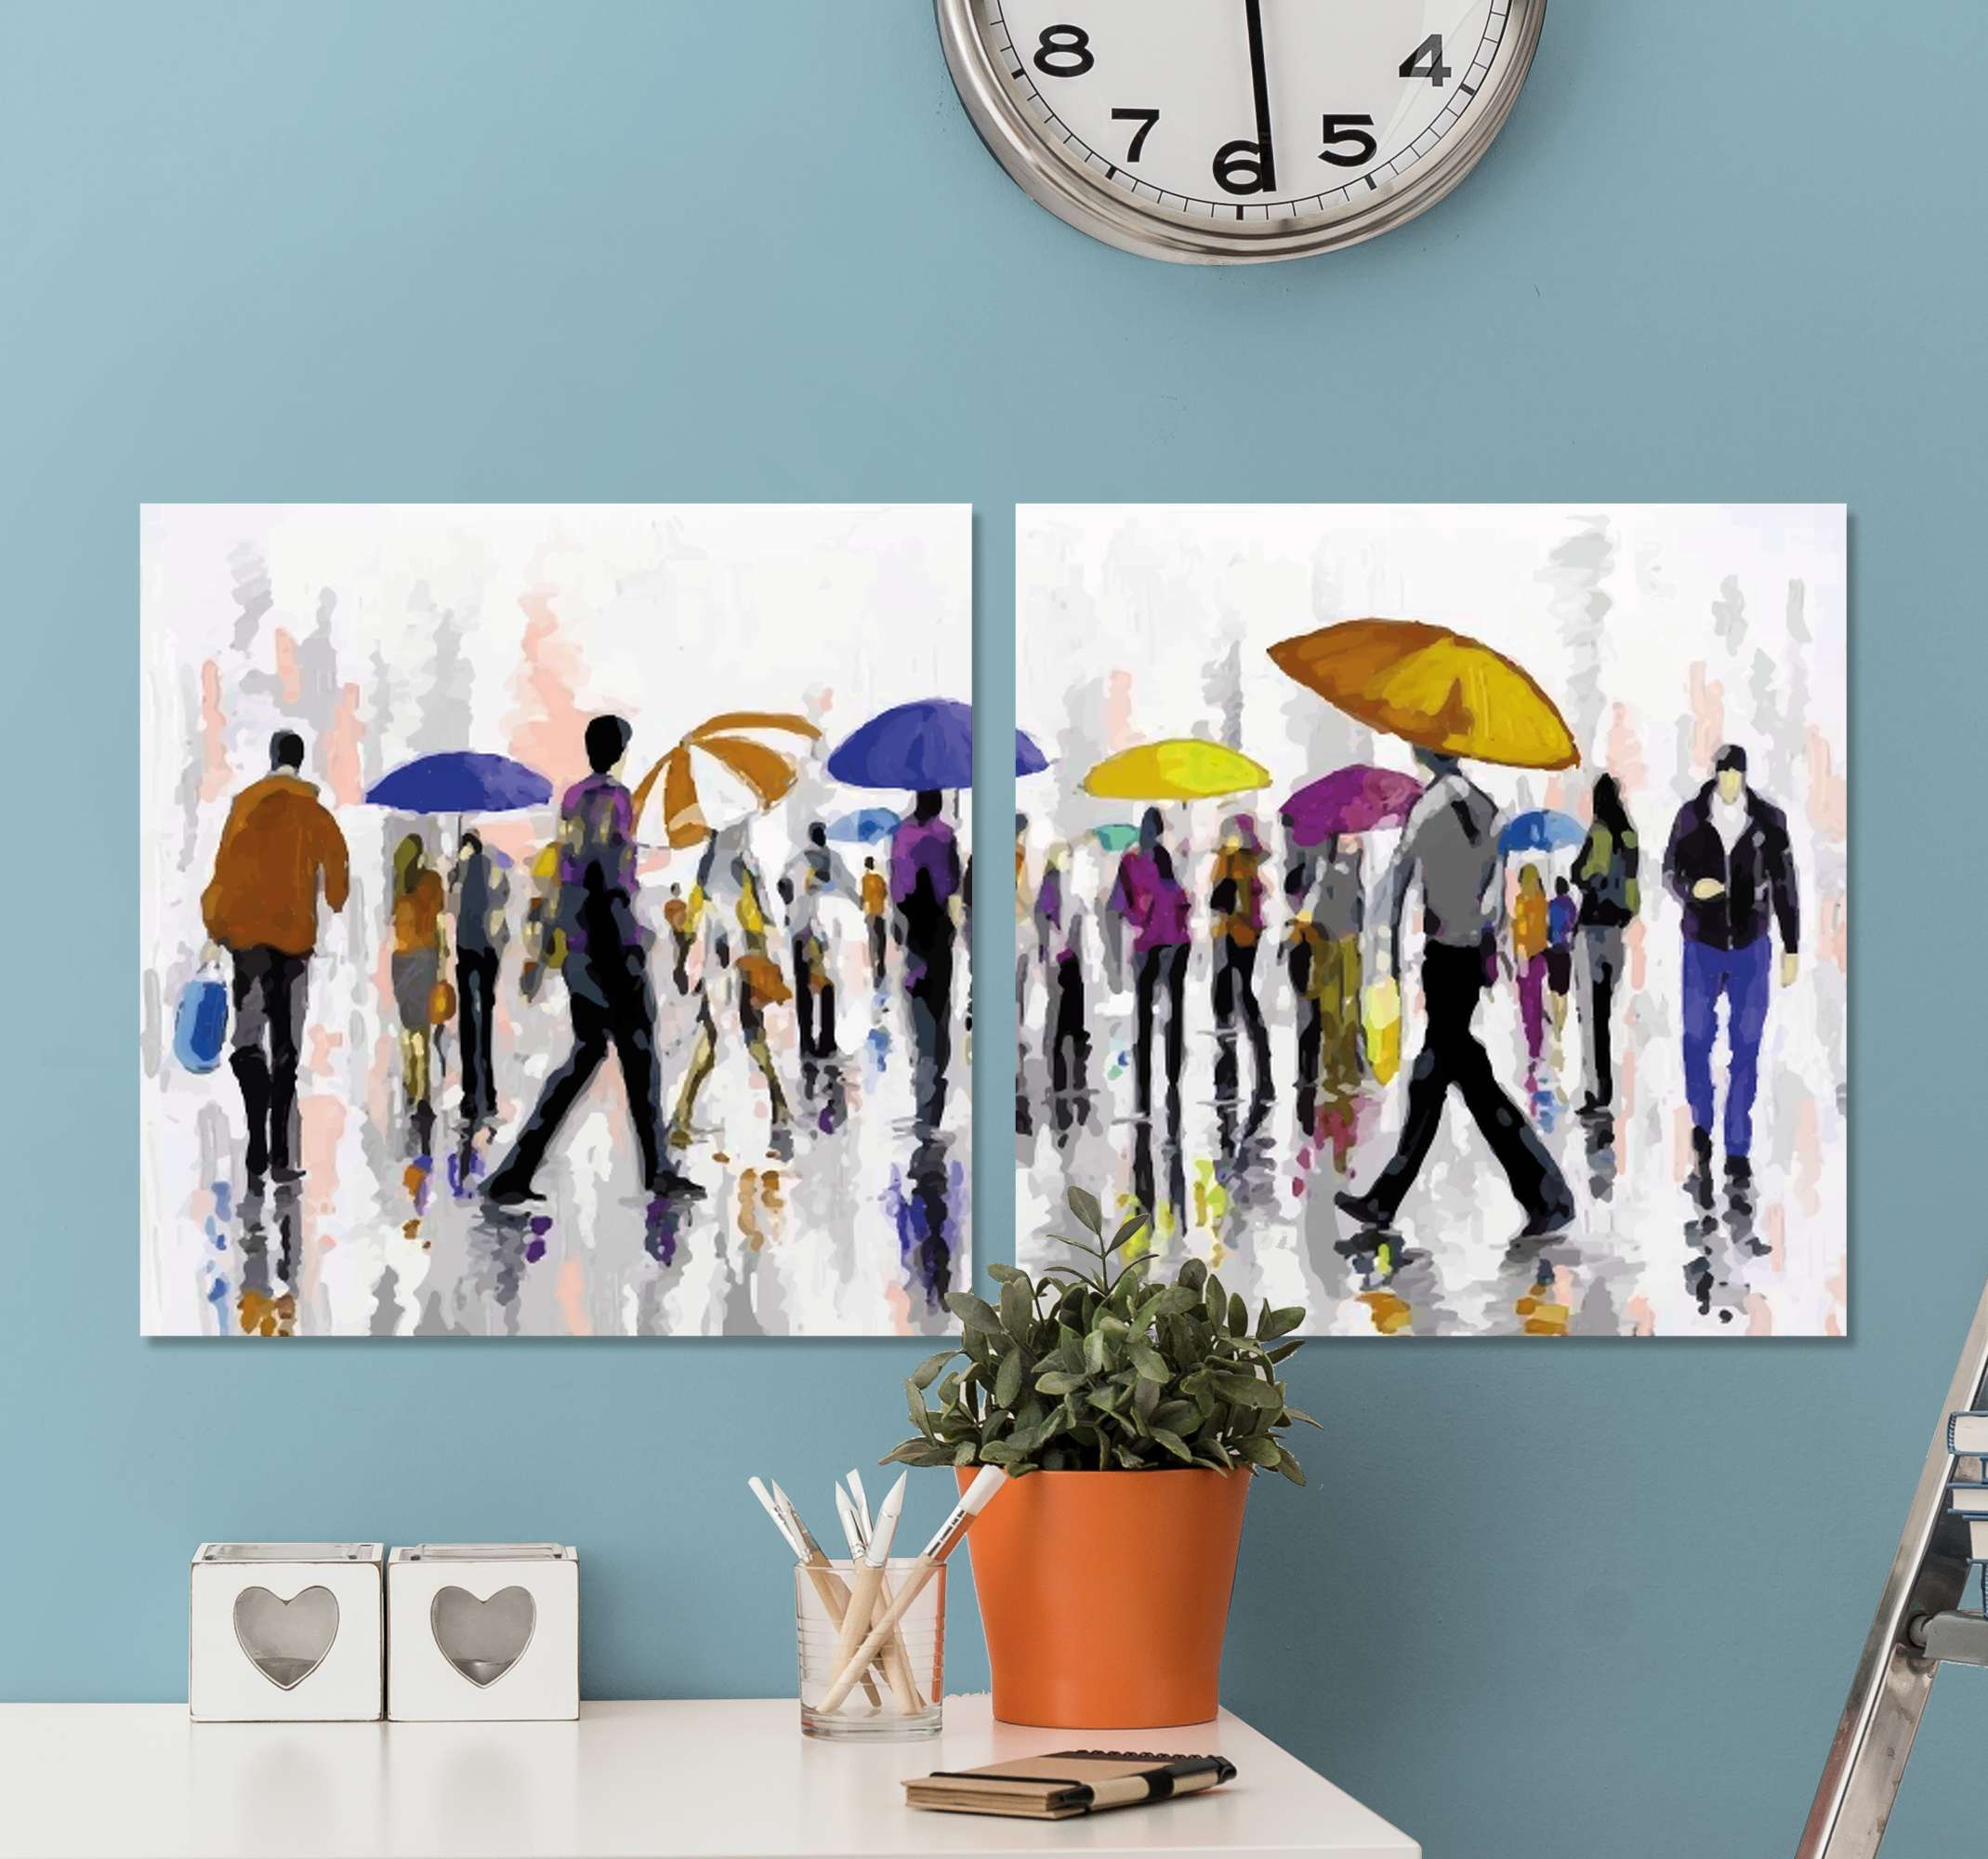 TenStickers. Personas bajo la lluvia people and character canvas prints. Canvas print with people in rain. The pattern shows a crowd with colorful umbrellas. Made of high quality materials. Check it out!